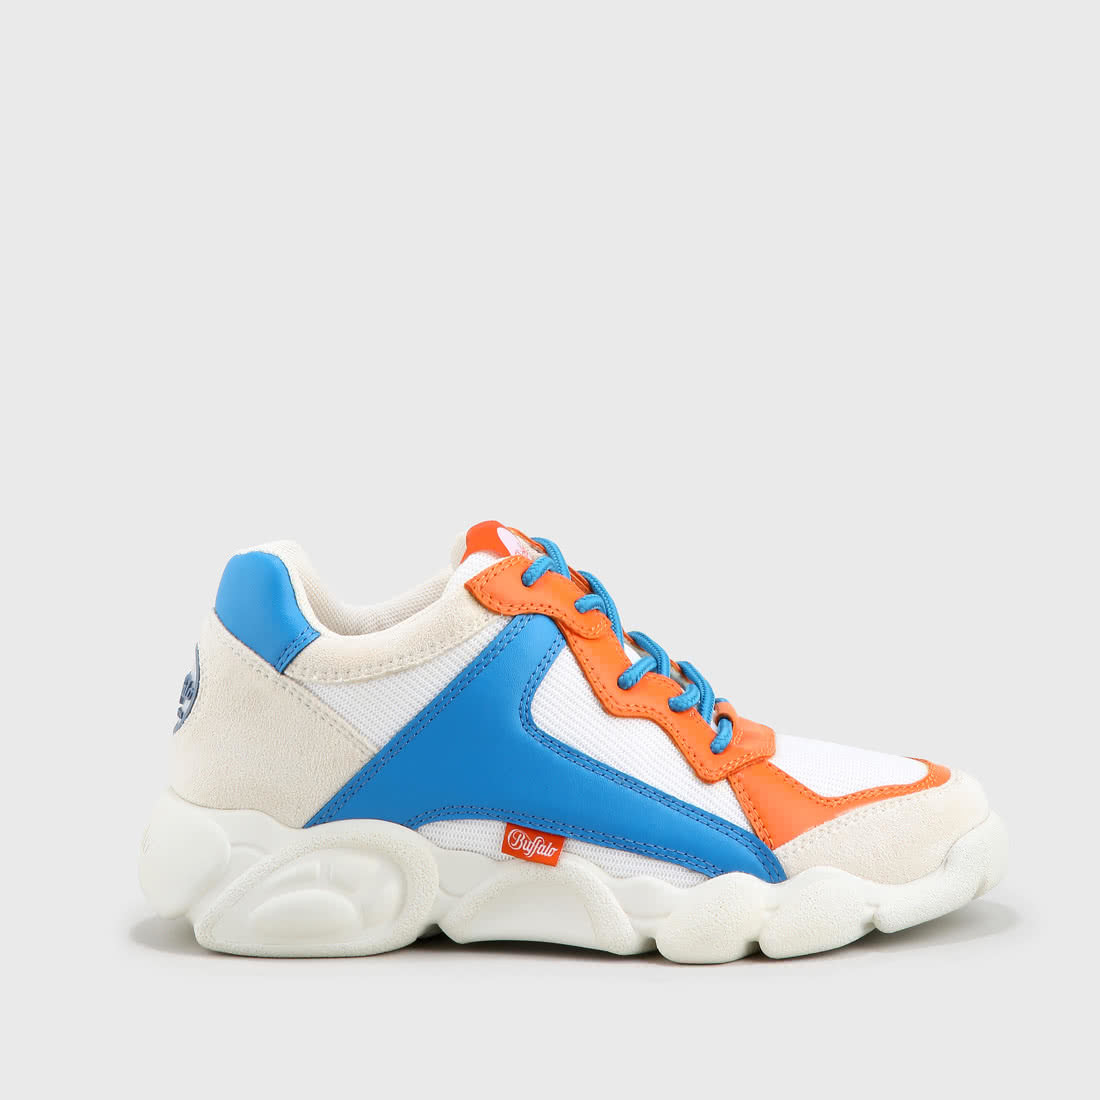 new arrival 9f163 f4027 CLD Cairo sneaker mesh leather look white/blue/orange